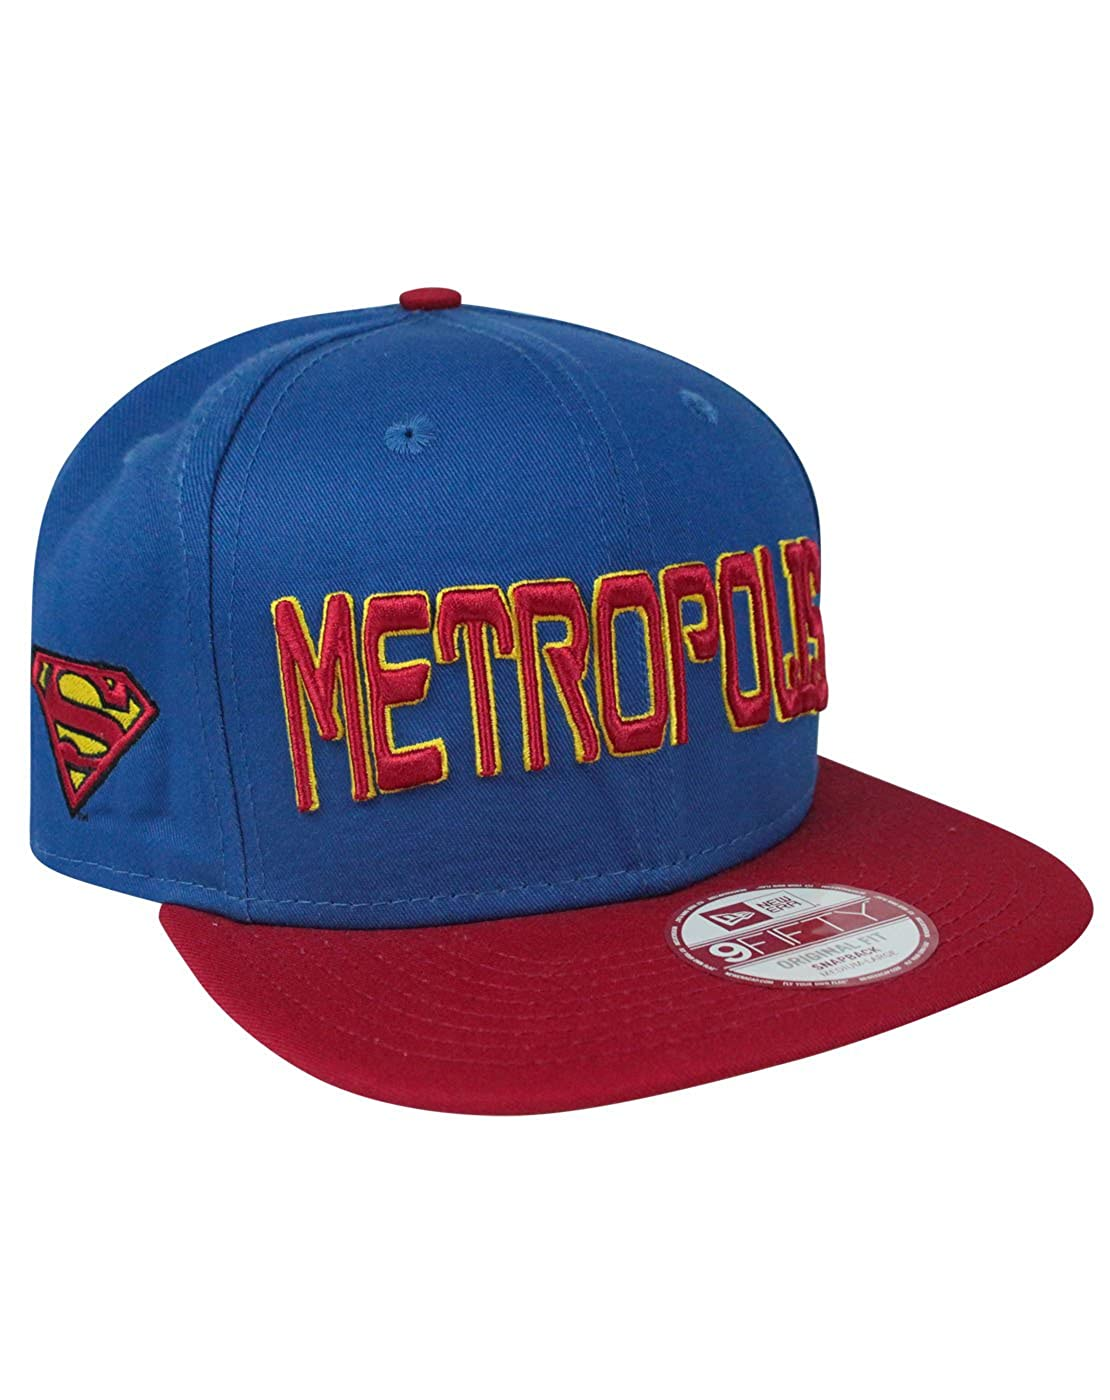 Unisex-Adultos - New Era - Superman - Gorra (S-M): Amazon.es: Ropa ...